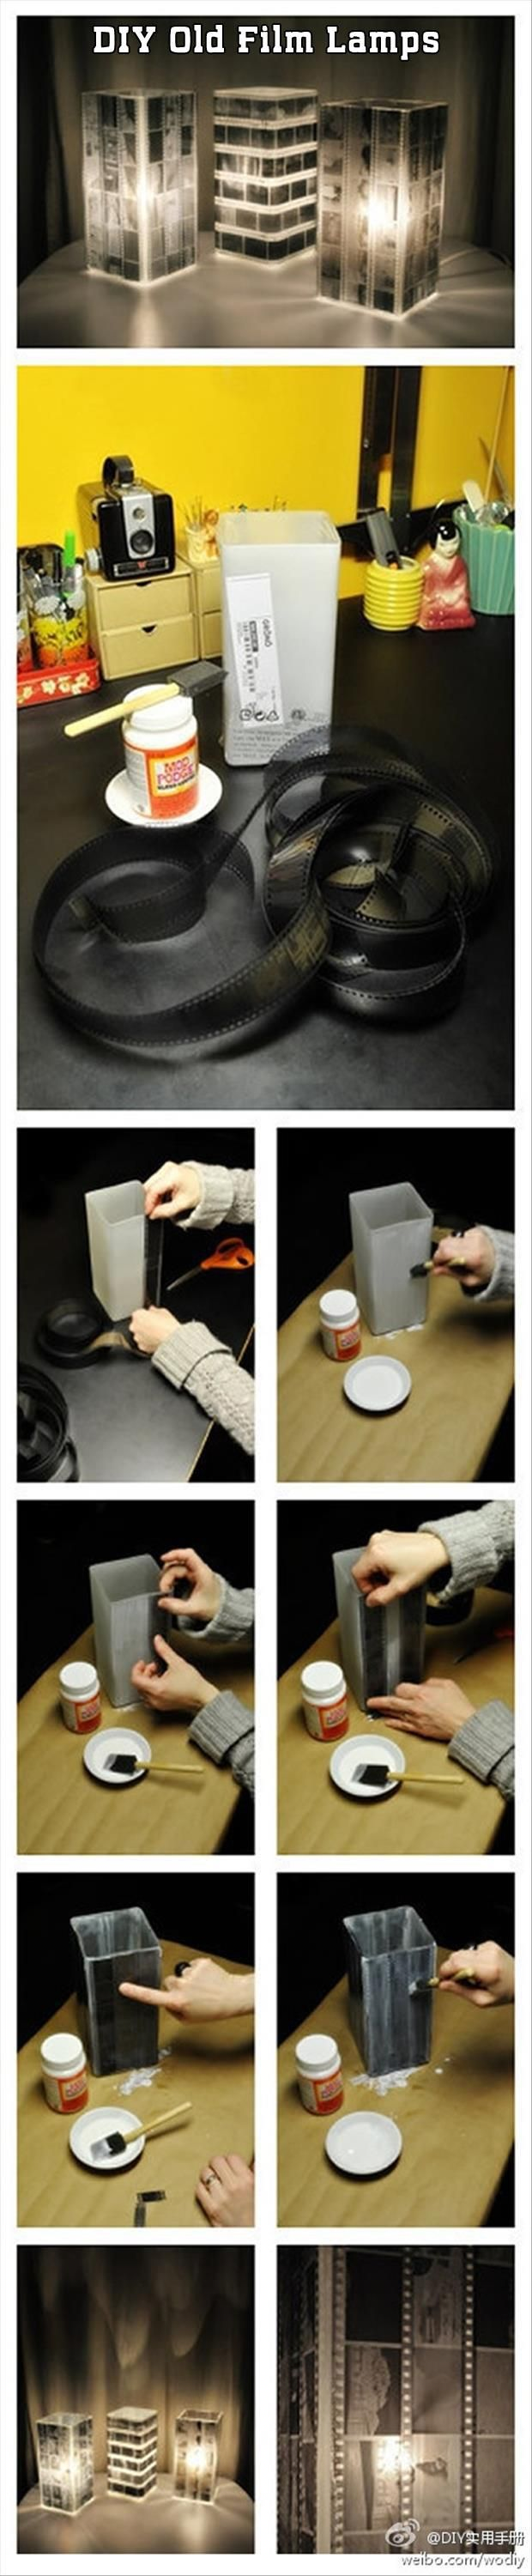 This is so amazing! I want to do this.